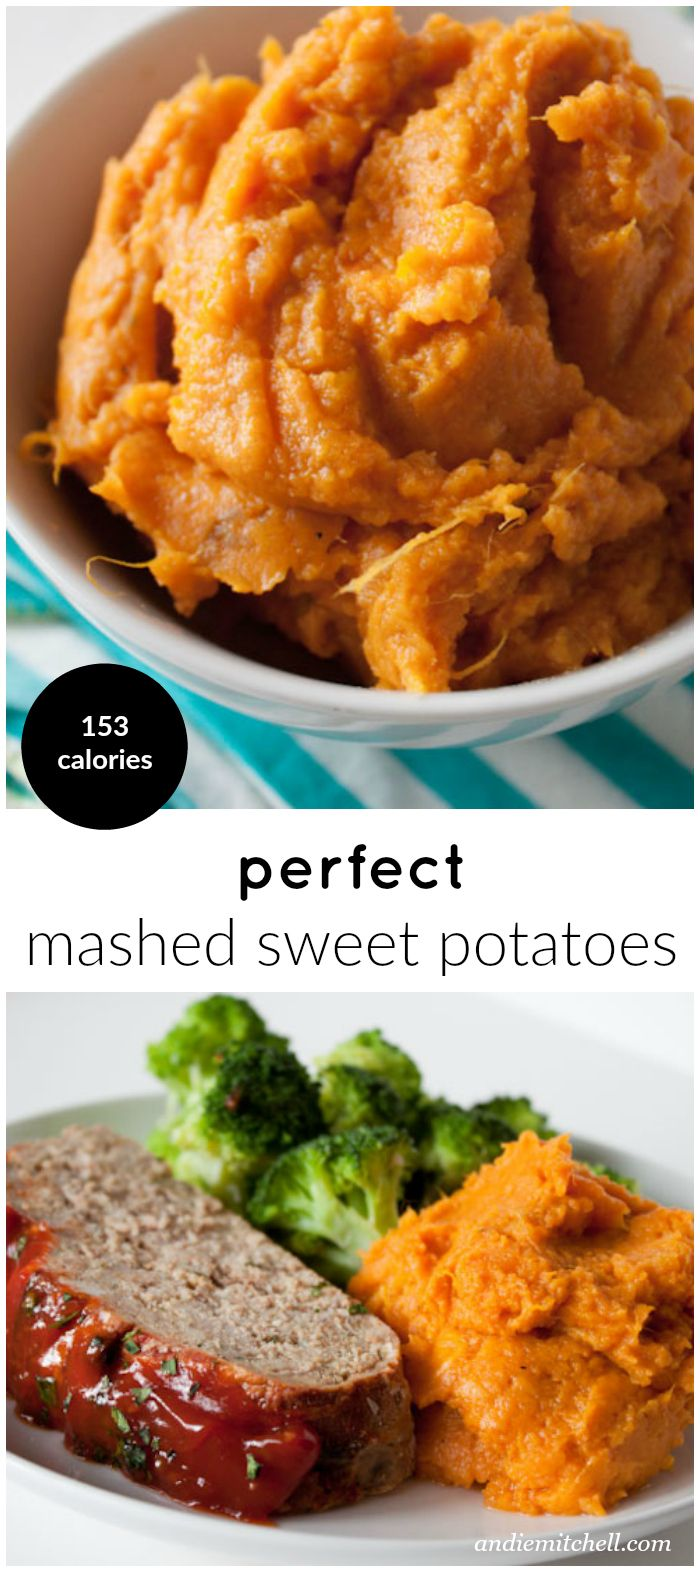 Here's the simplest way to make perfect mashed sweet potatoes with a little cinnamon and ginger thrown in for flavor! The recipe can easily be made vegan with coconut oil and unsweetened almond milk.